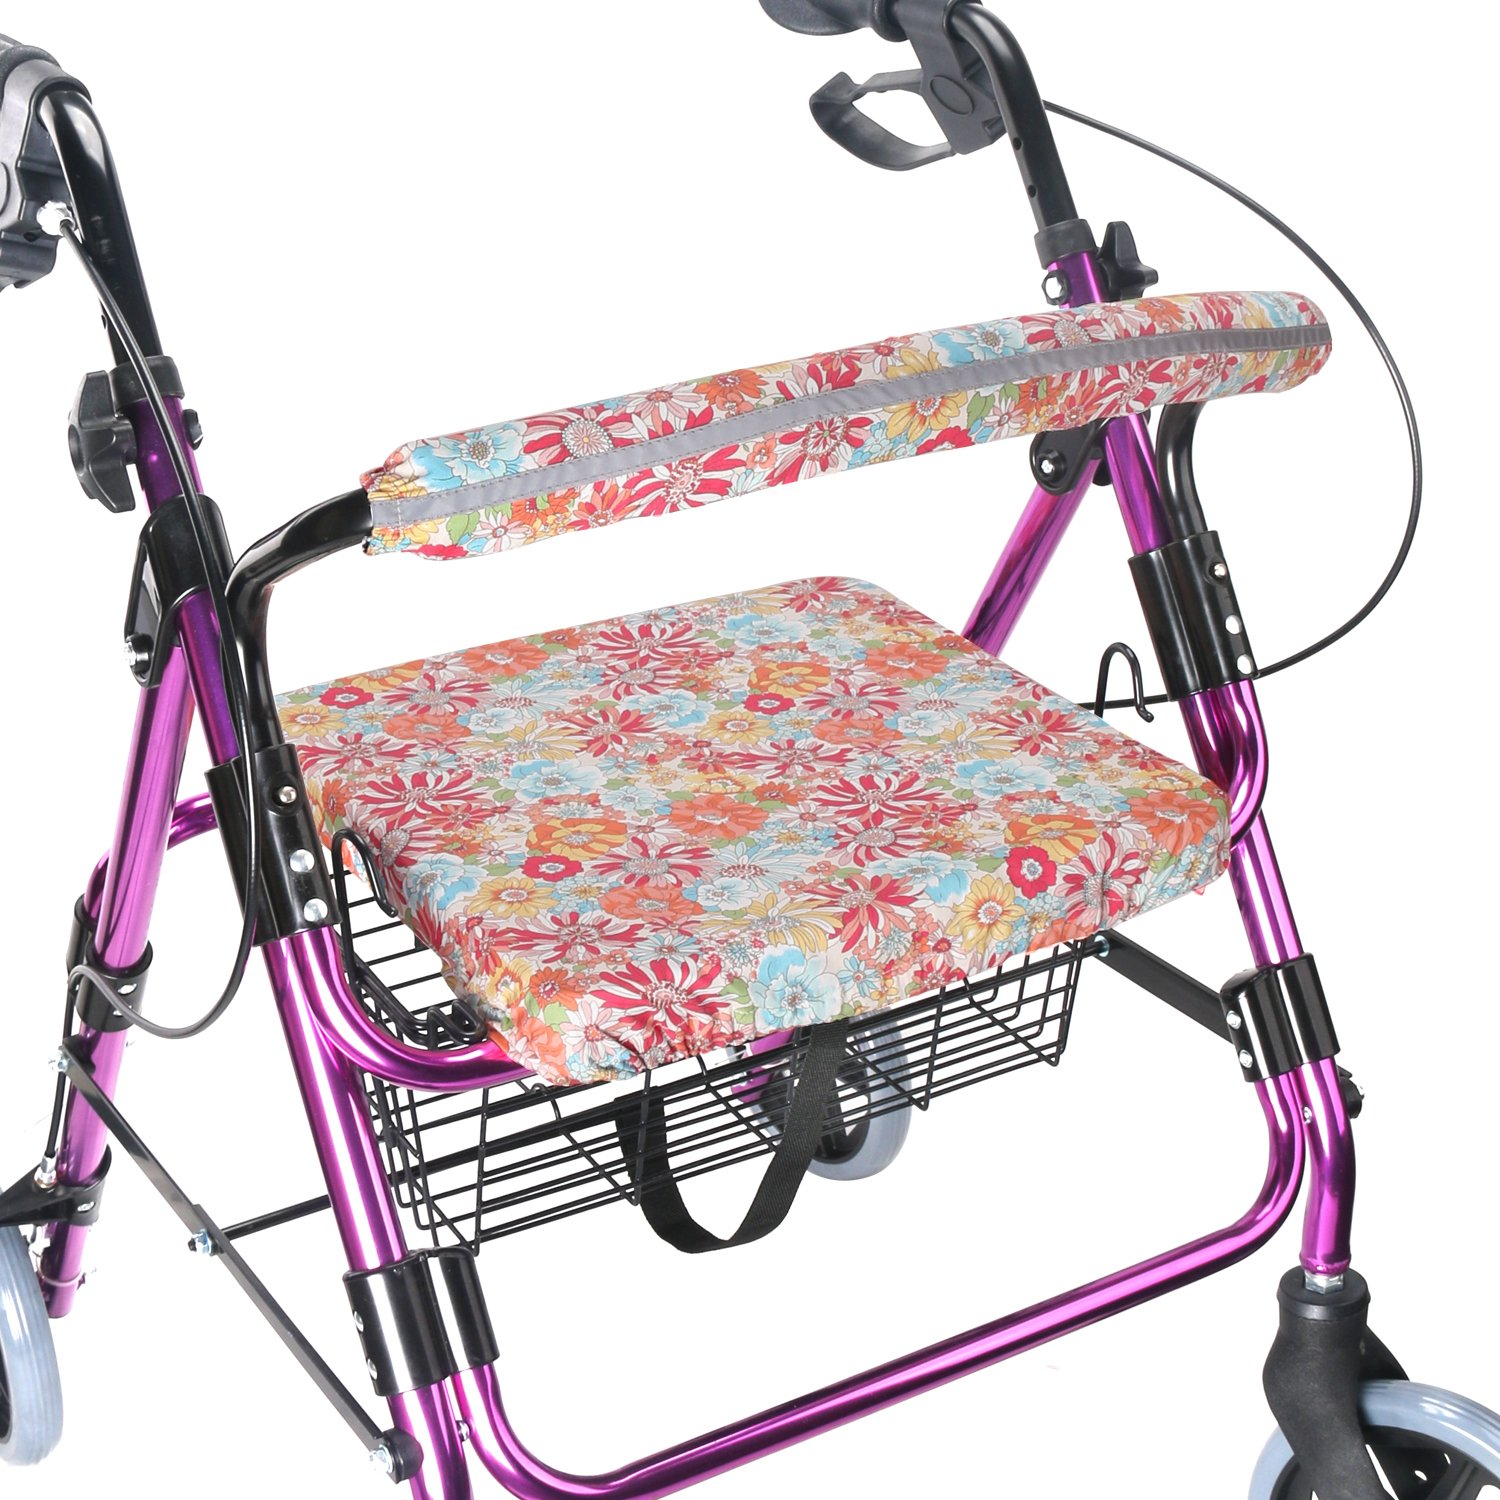 Walker Seat Cover Rollator Walker Seat and Backrest Covers Vibrant Walker Cover One Size Multiple Colors (CB1885) by TOMMHANES AMISGUOER